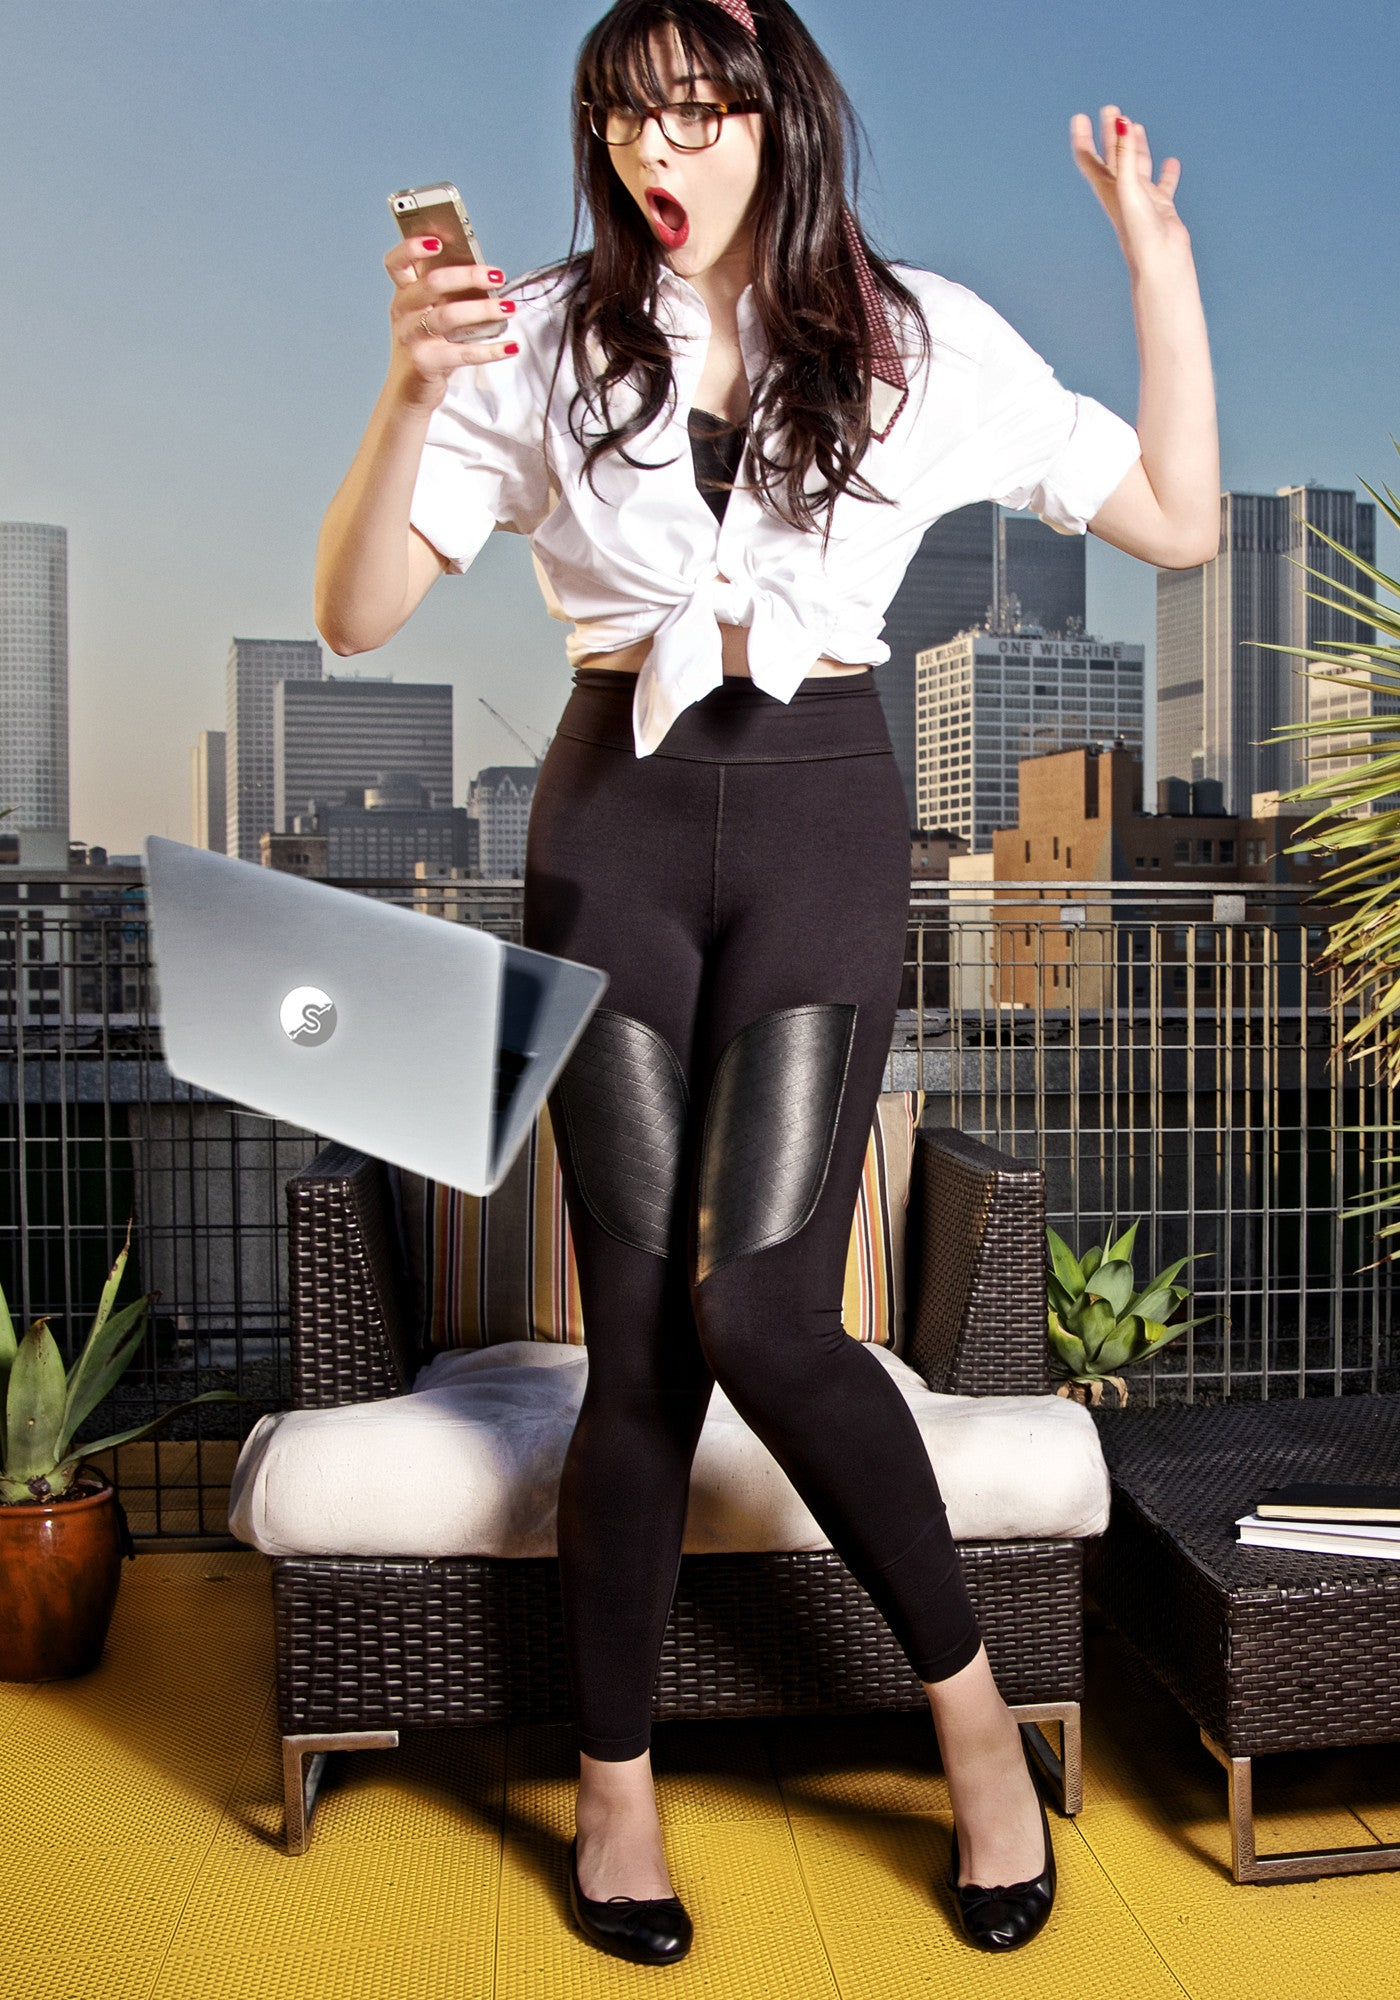 Working from home 2020. High waisted legging in black with foldover waistband, leather patches on thigh, convenient back pocket at waist. Made from premium high performance activewear fabric that wicks moisture away from your body to keep you comfortable. Downtown Los Angeles in background.